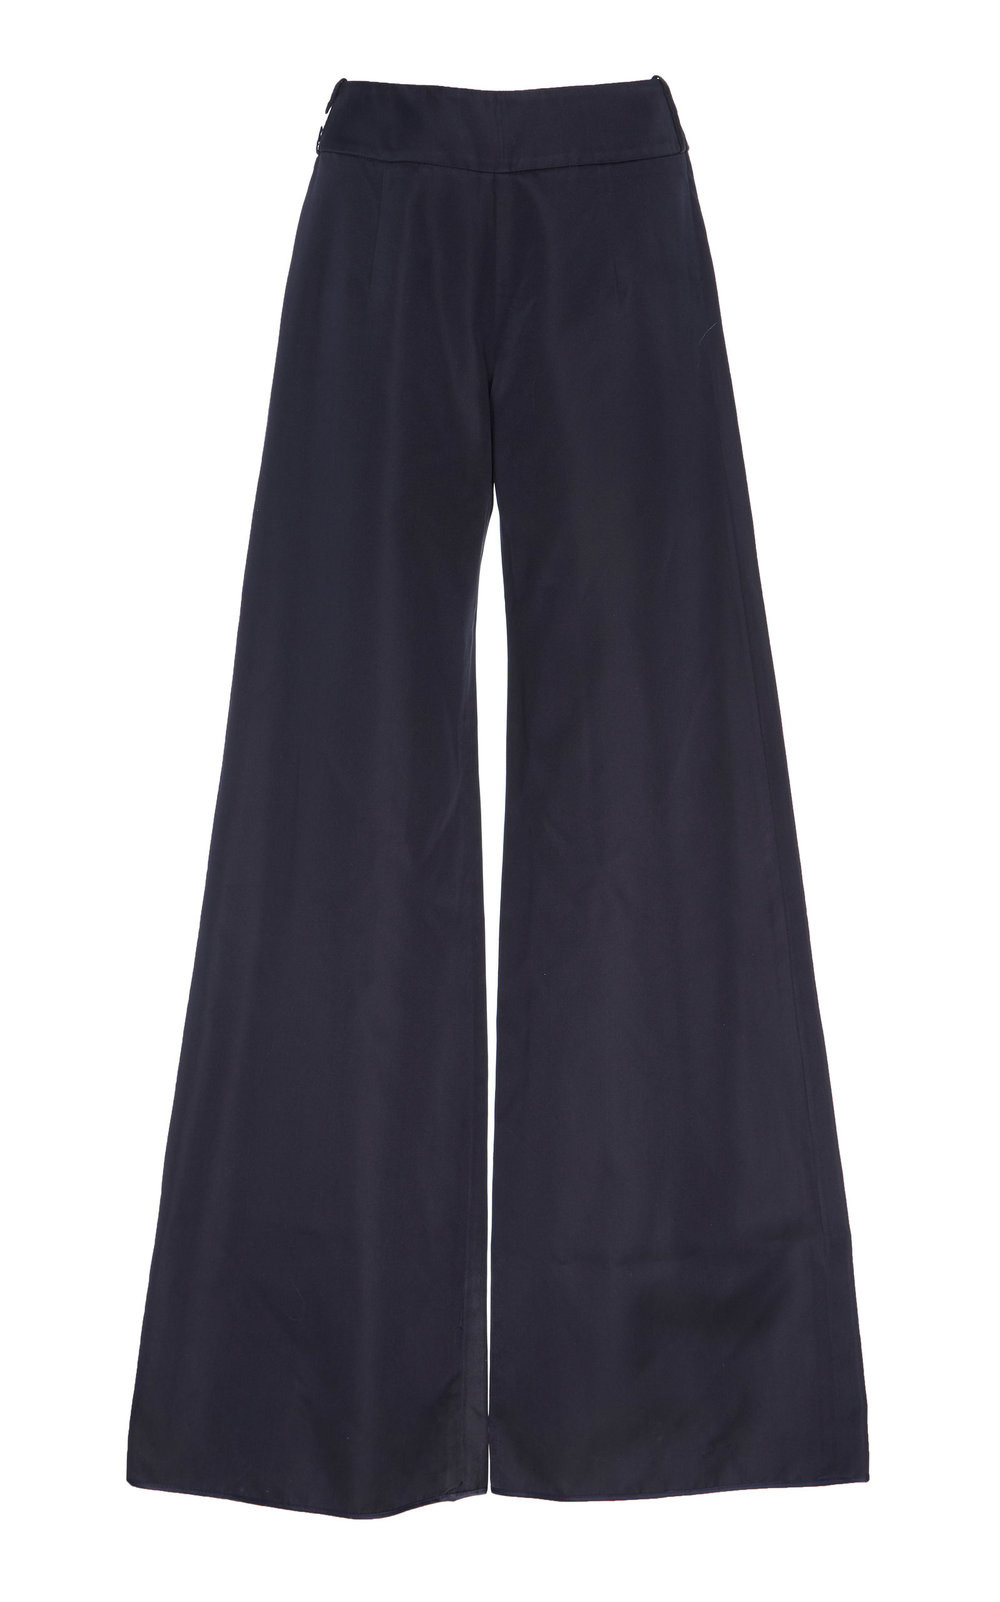 Scabiosa Silk Pants - NAVY  These unique Silk pants feature wide leg silhouette and high waistline. The lustrous fabric adds a sophisticated touch of glamour.